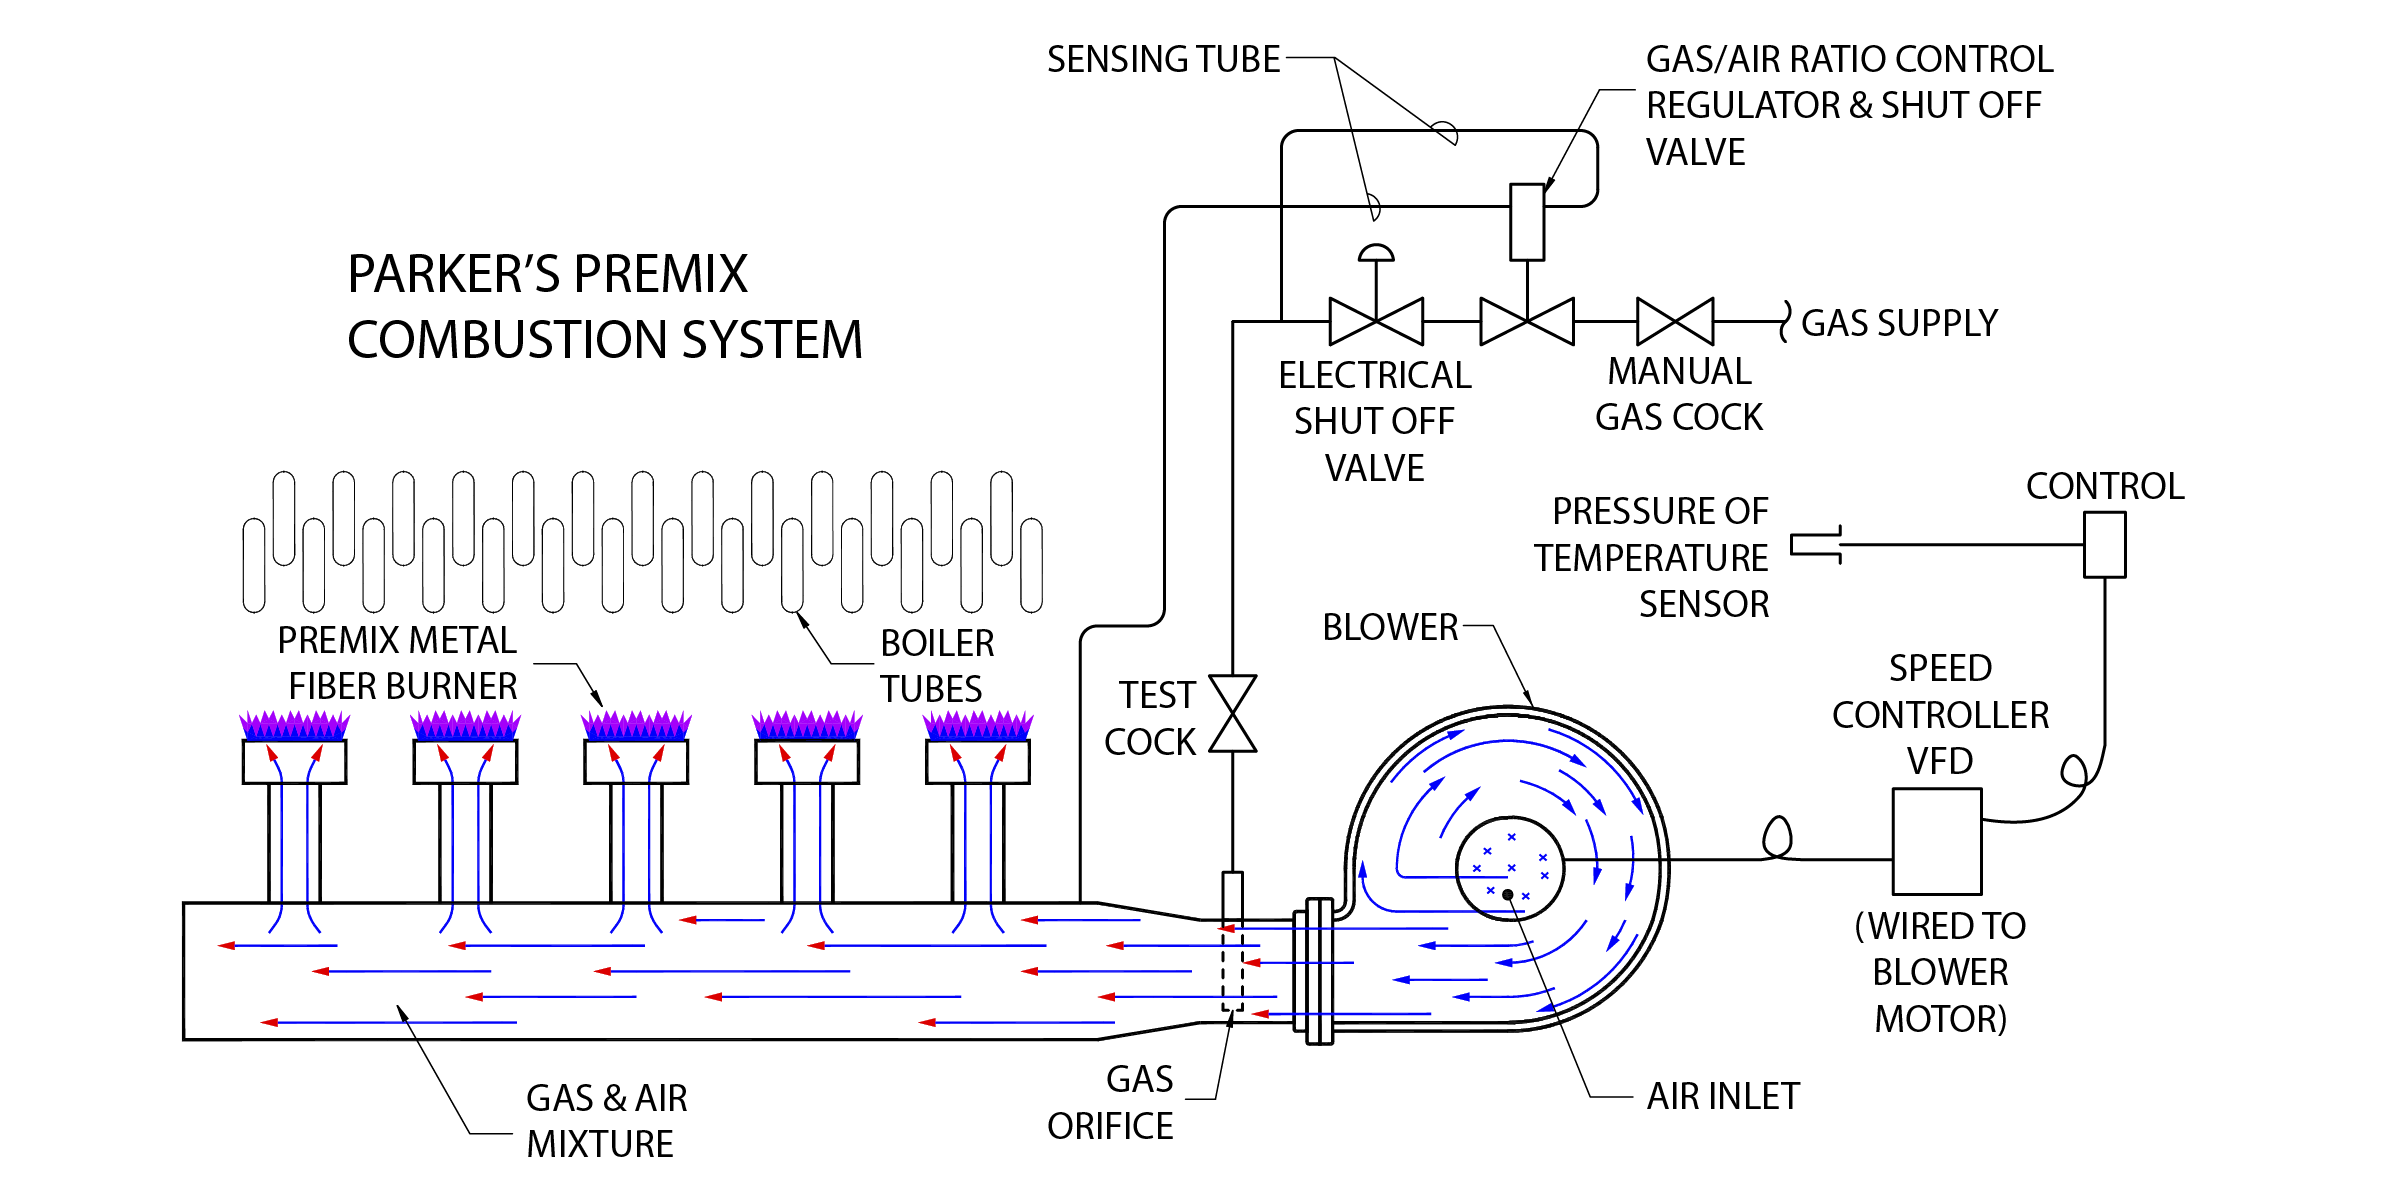 Parker Boiler Wiring Diagram - Wiring Diagram & Cable Management on